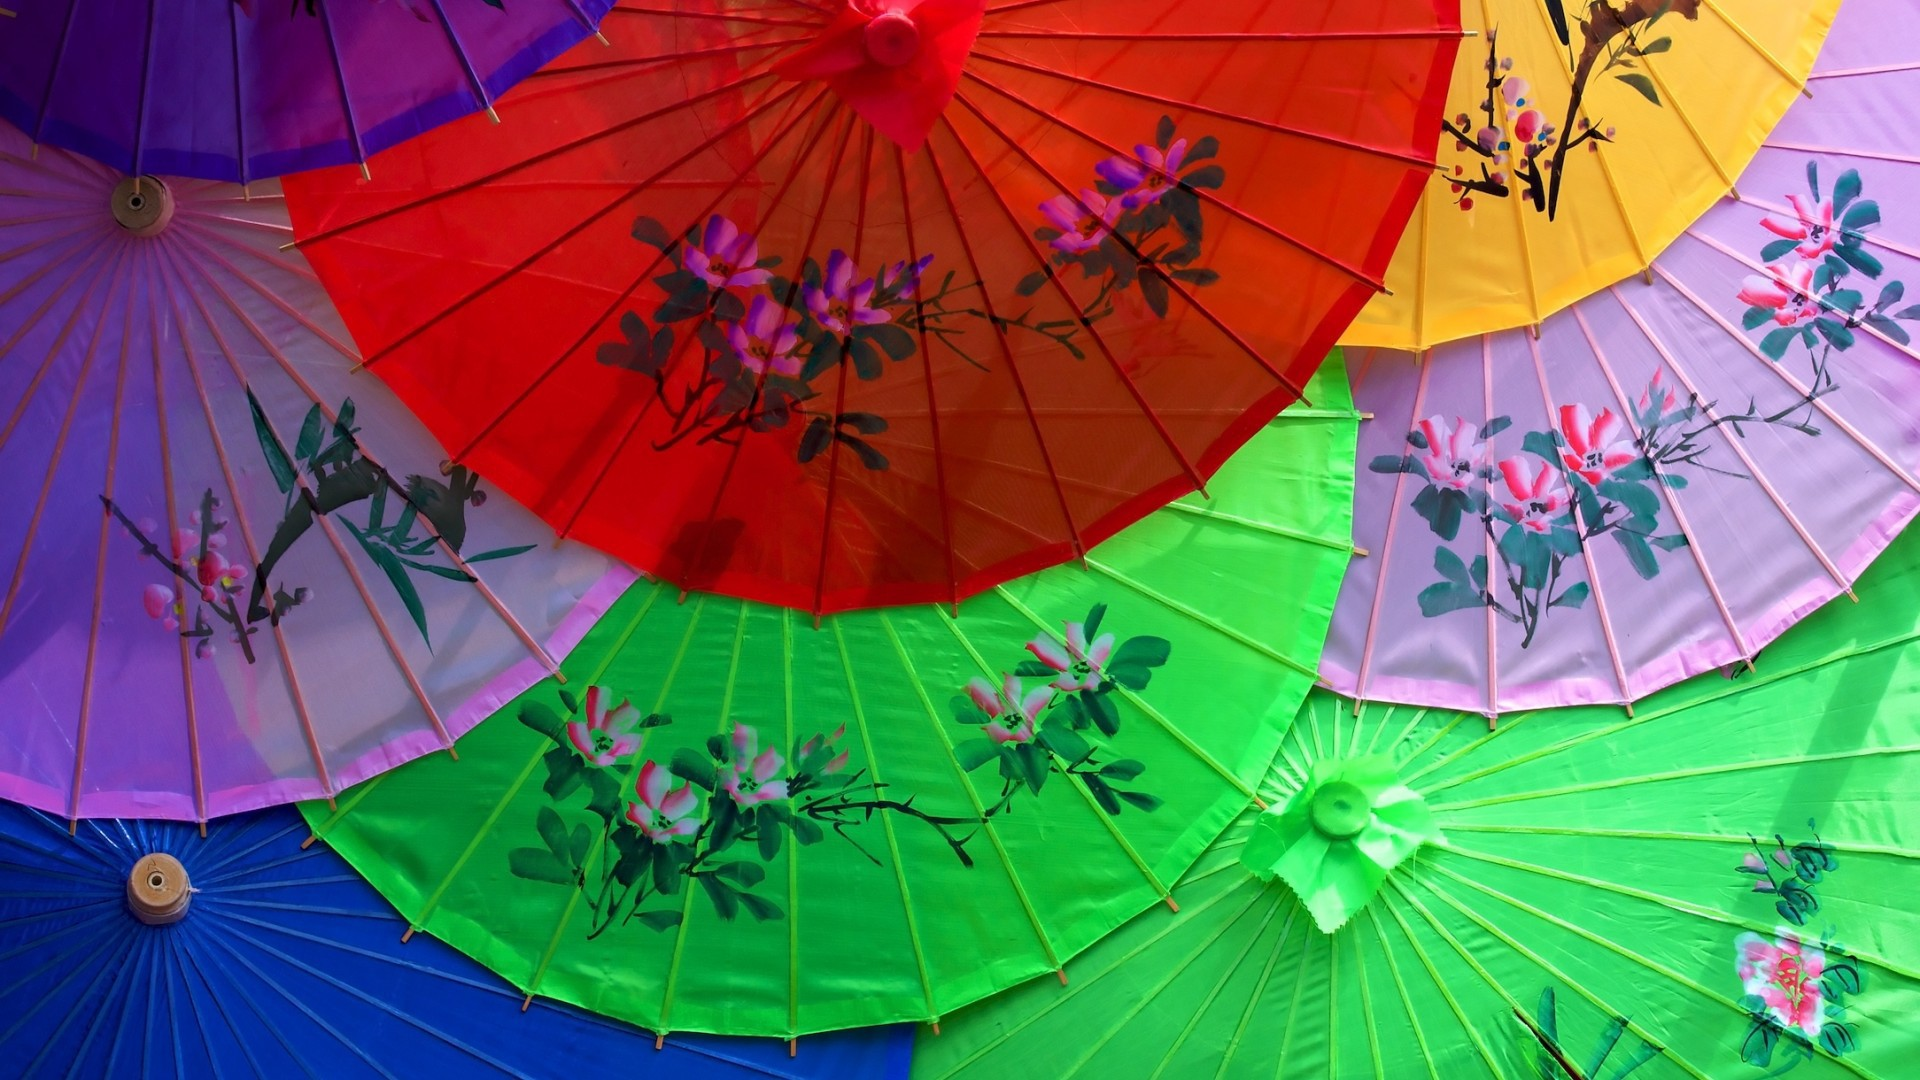 Japanese umbrellas wallpapers and images - wallpapers, pictures ...